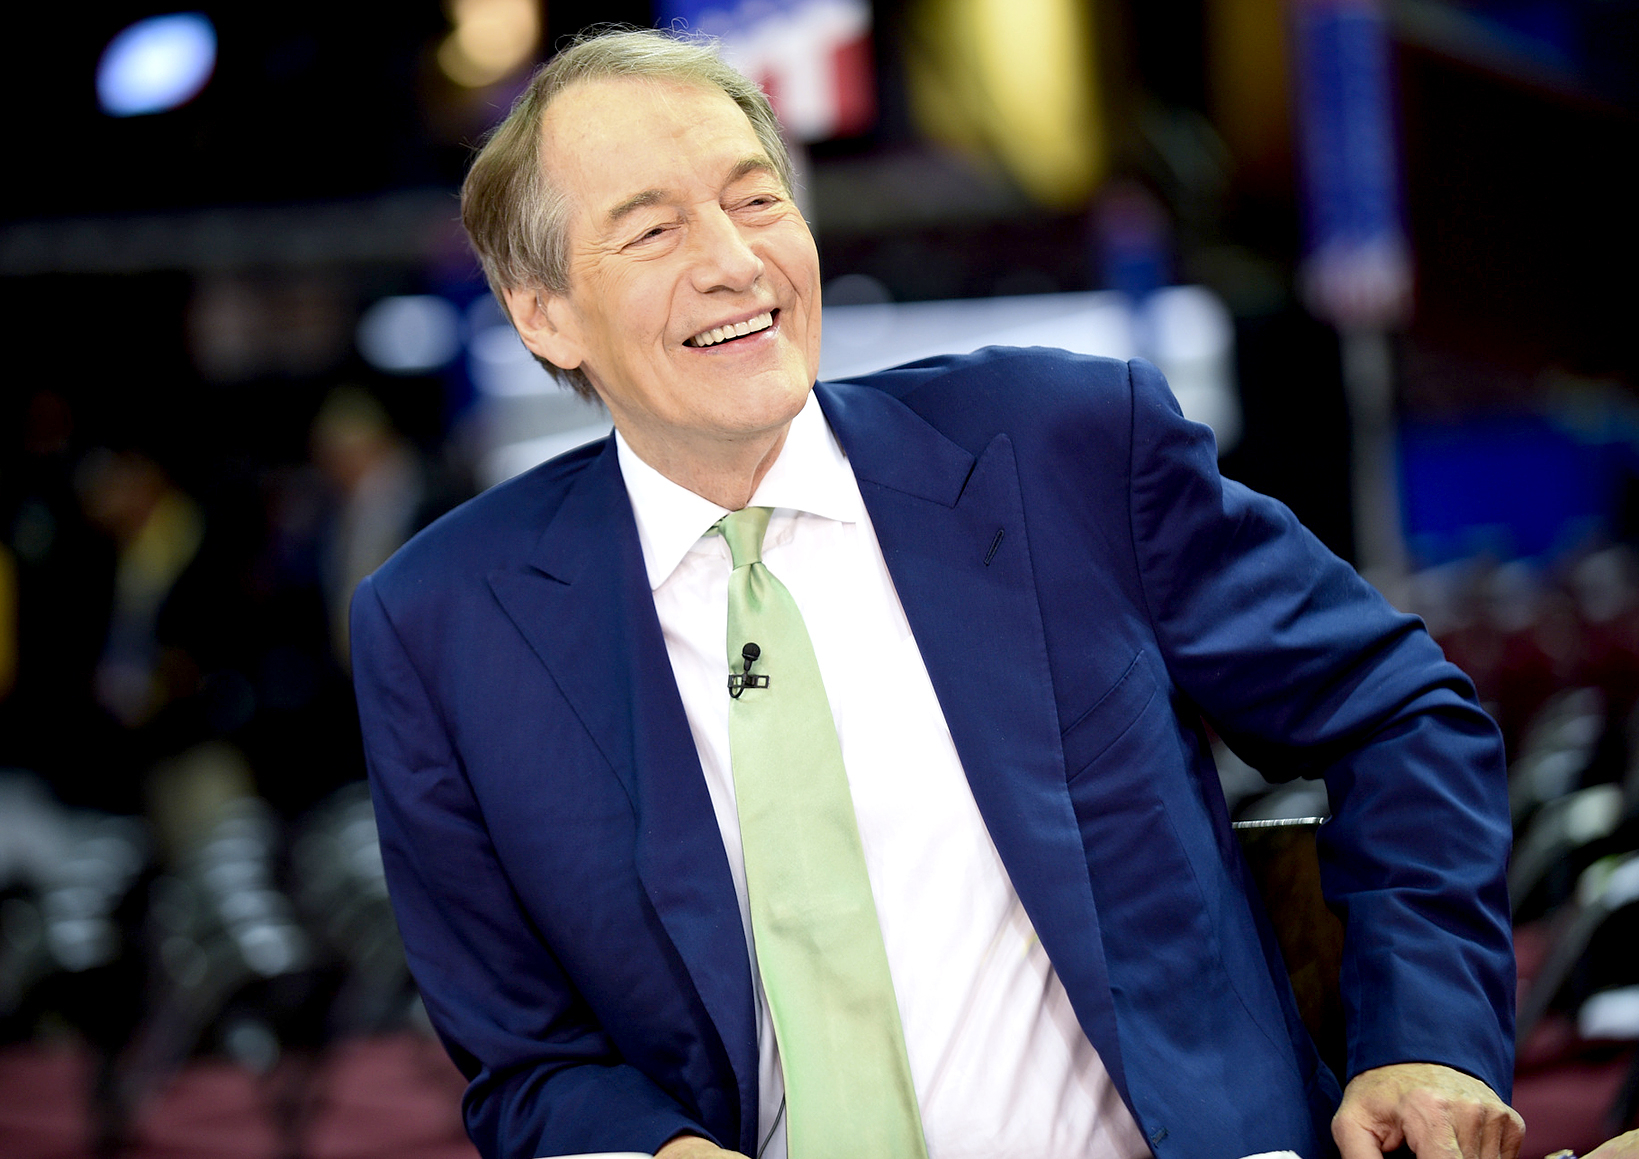 Charlie Rose at the 2016 Republican National Convention in Cleveland, Ohio on Wednesday, July 20, 2016.